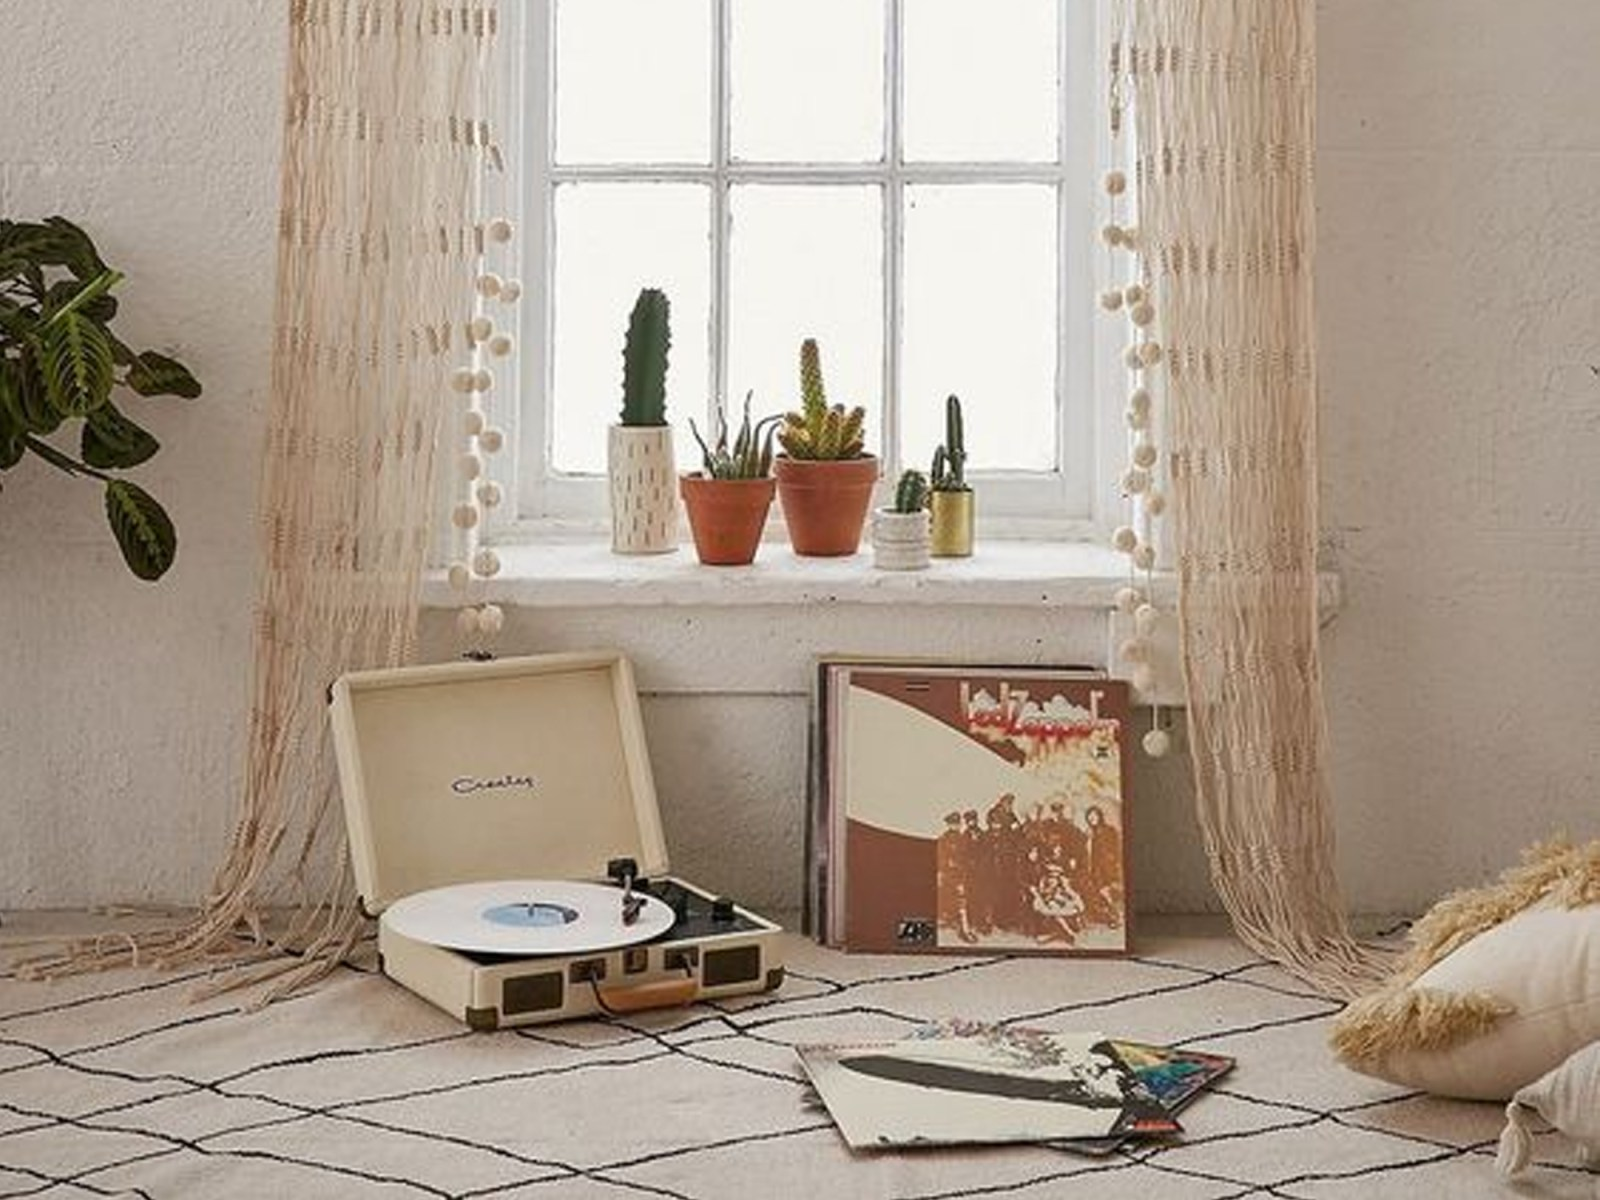 If you're looking for places to buy inexpensive curtains online, then these curtain stores offer the best selection for the best price! From white, thermal, sheer, panels and more there are so many options when it comes to cheap curtains!